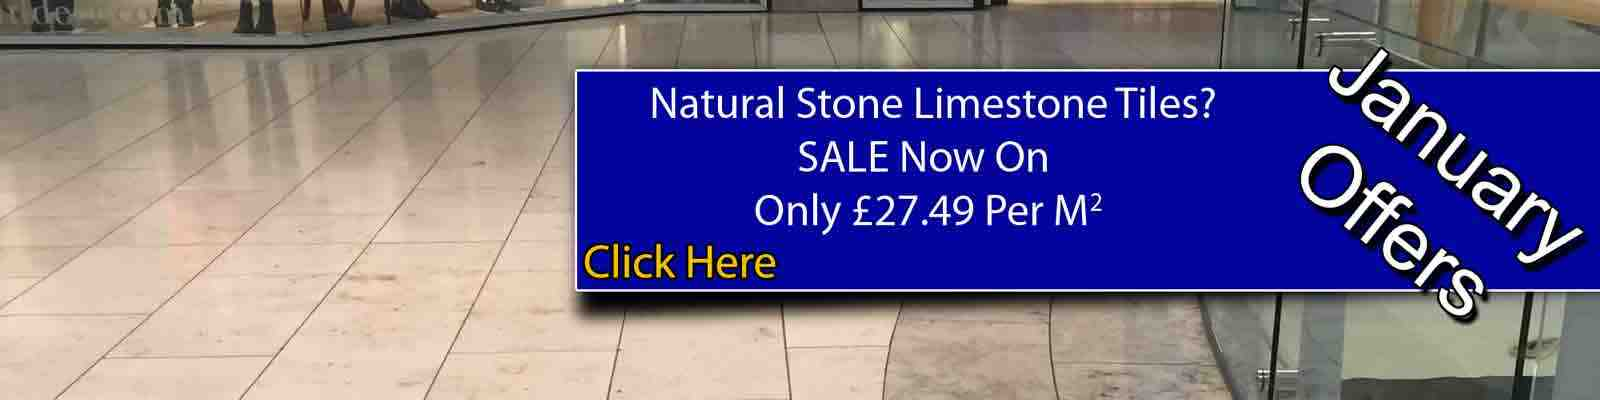 Limestone Prices for February